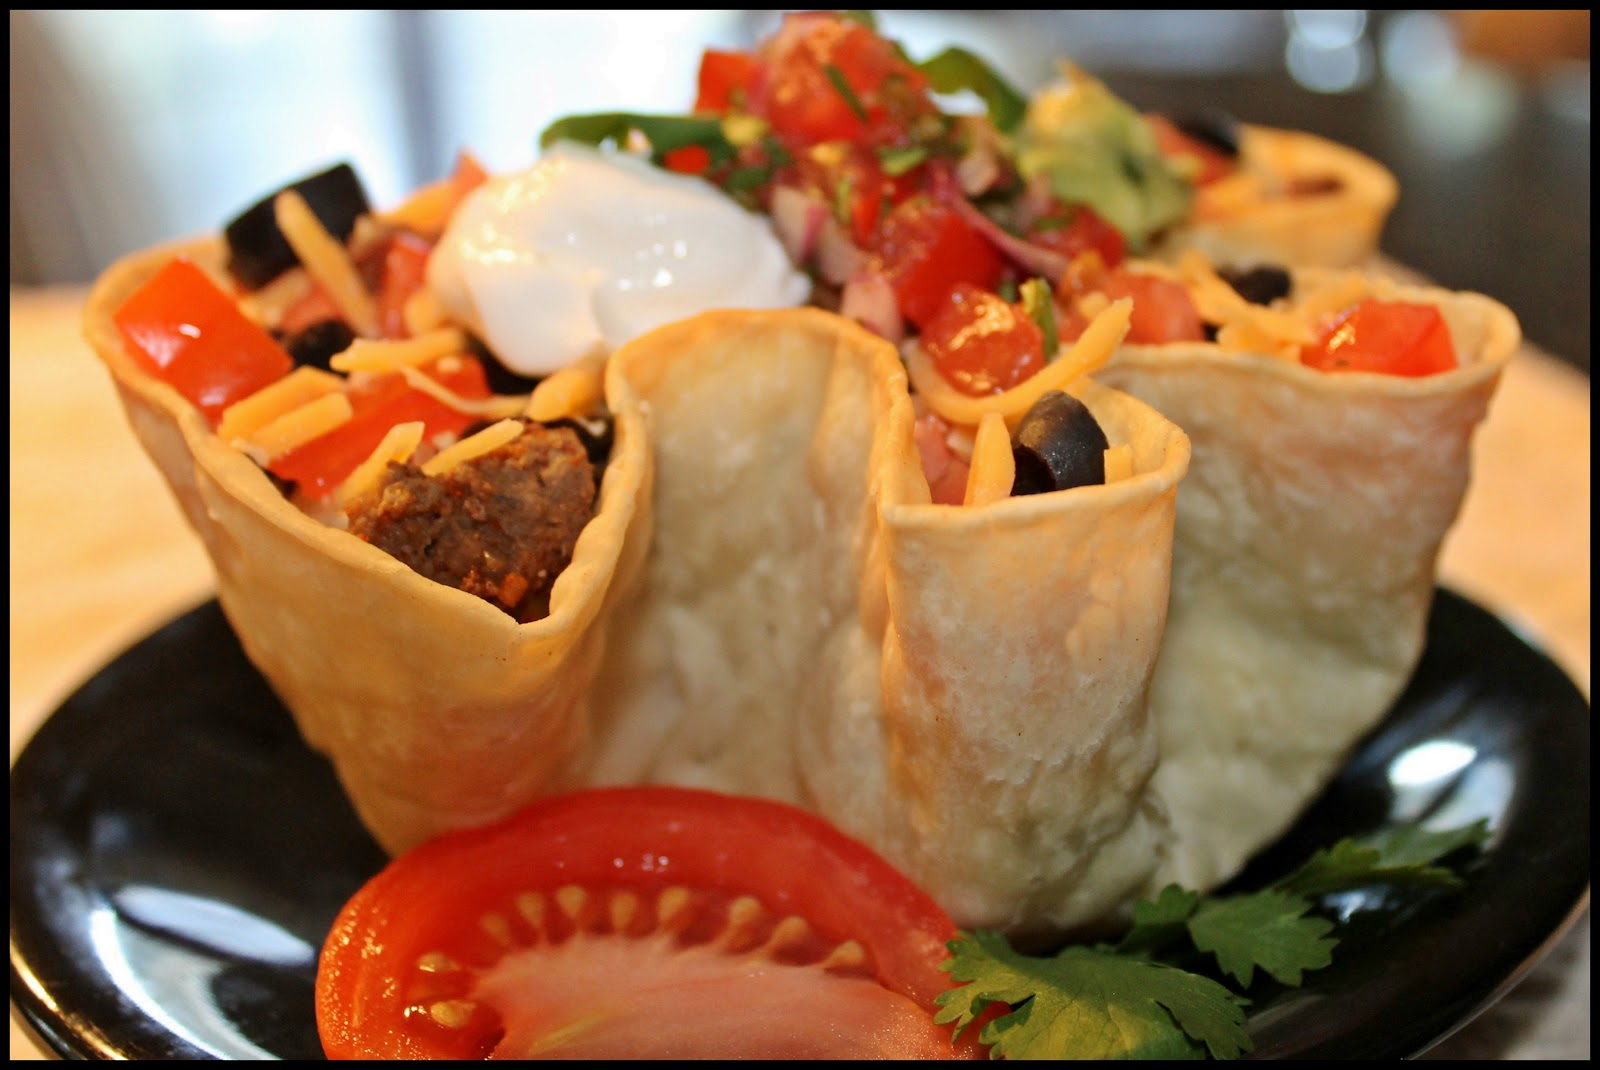 taco salad the tortilla bowl is made from this vegan taco salad in a ...